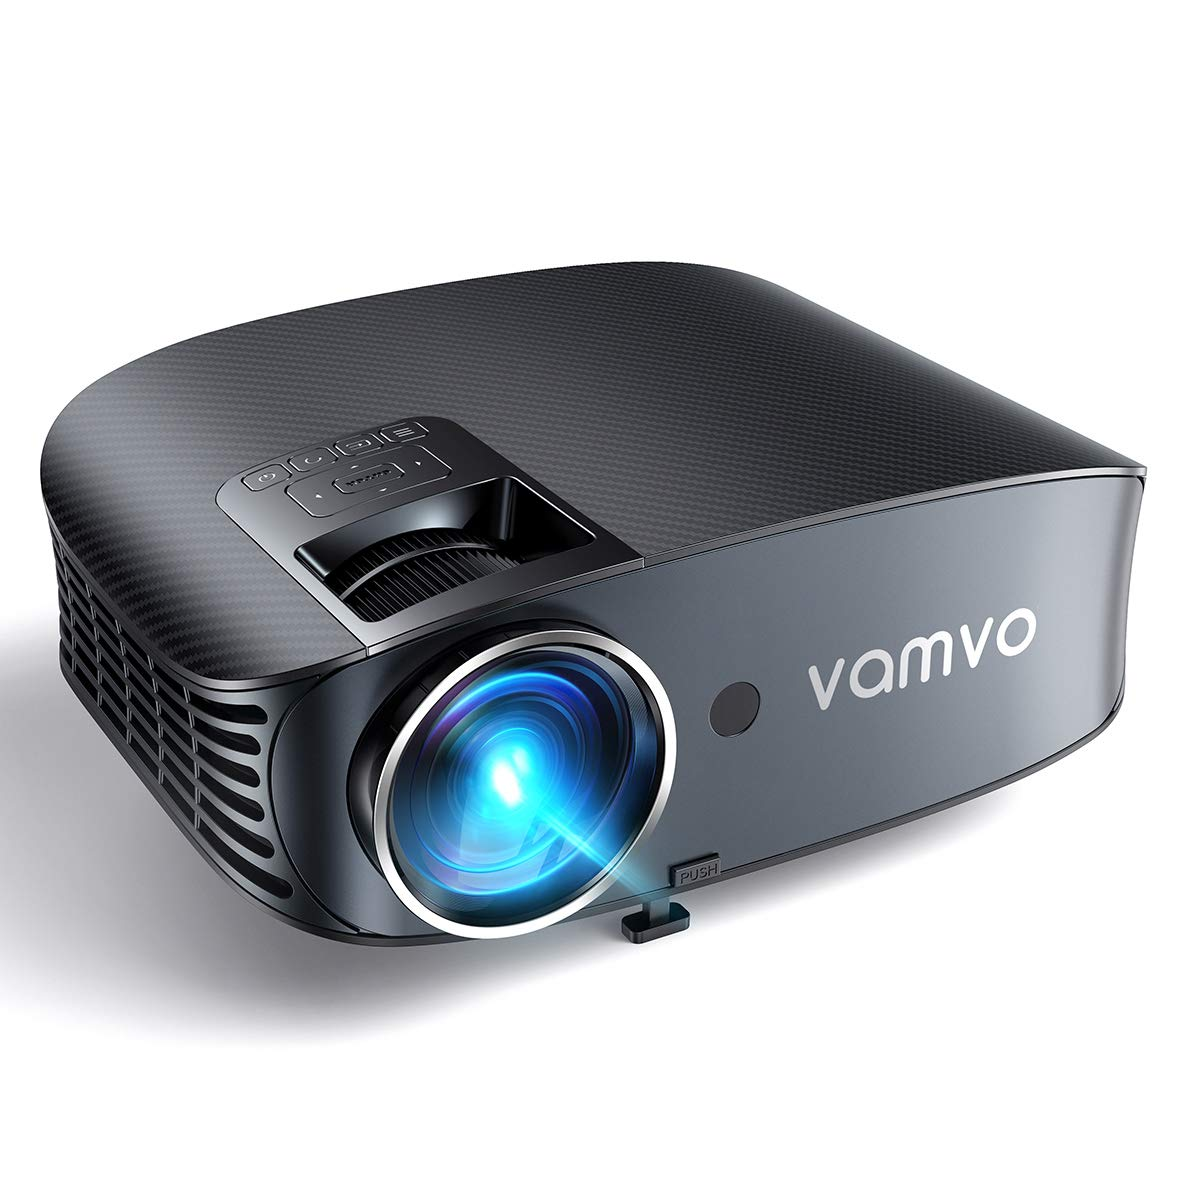 Video Projector, Outdoor Movie Projector with 200'' Projection Size, vamvo Home Theater Projector with Platform Pallet, Support 1080P, Compatible with Fire TV Stick, PS4, HDMI, VGA, AV and USB 3600L